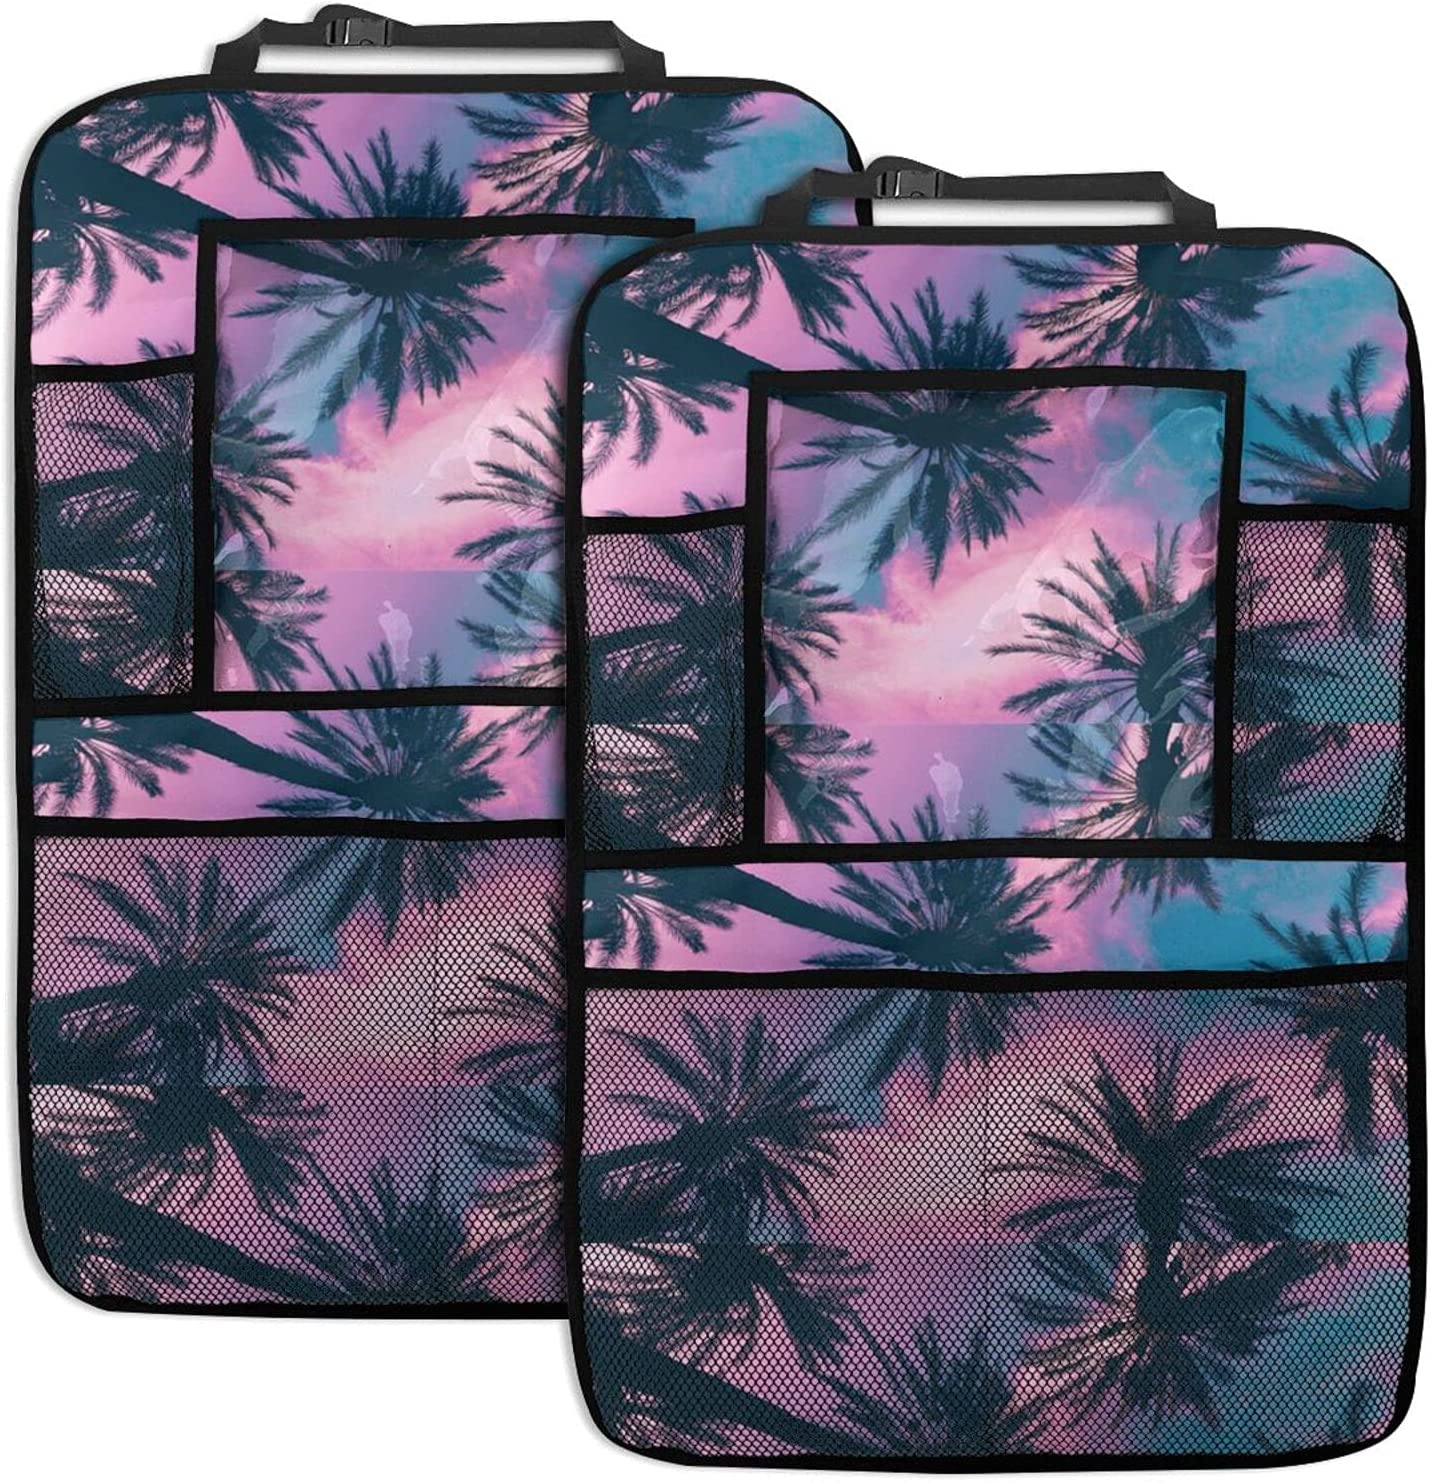 Palm Tree Pink Clouds Car Back Seat Function Multi Boston Industry No. 1 Mall Organizer